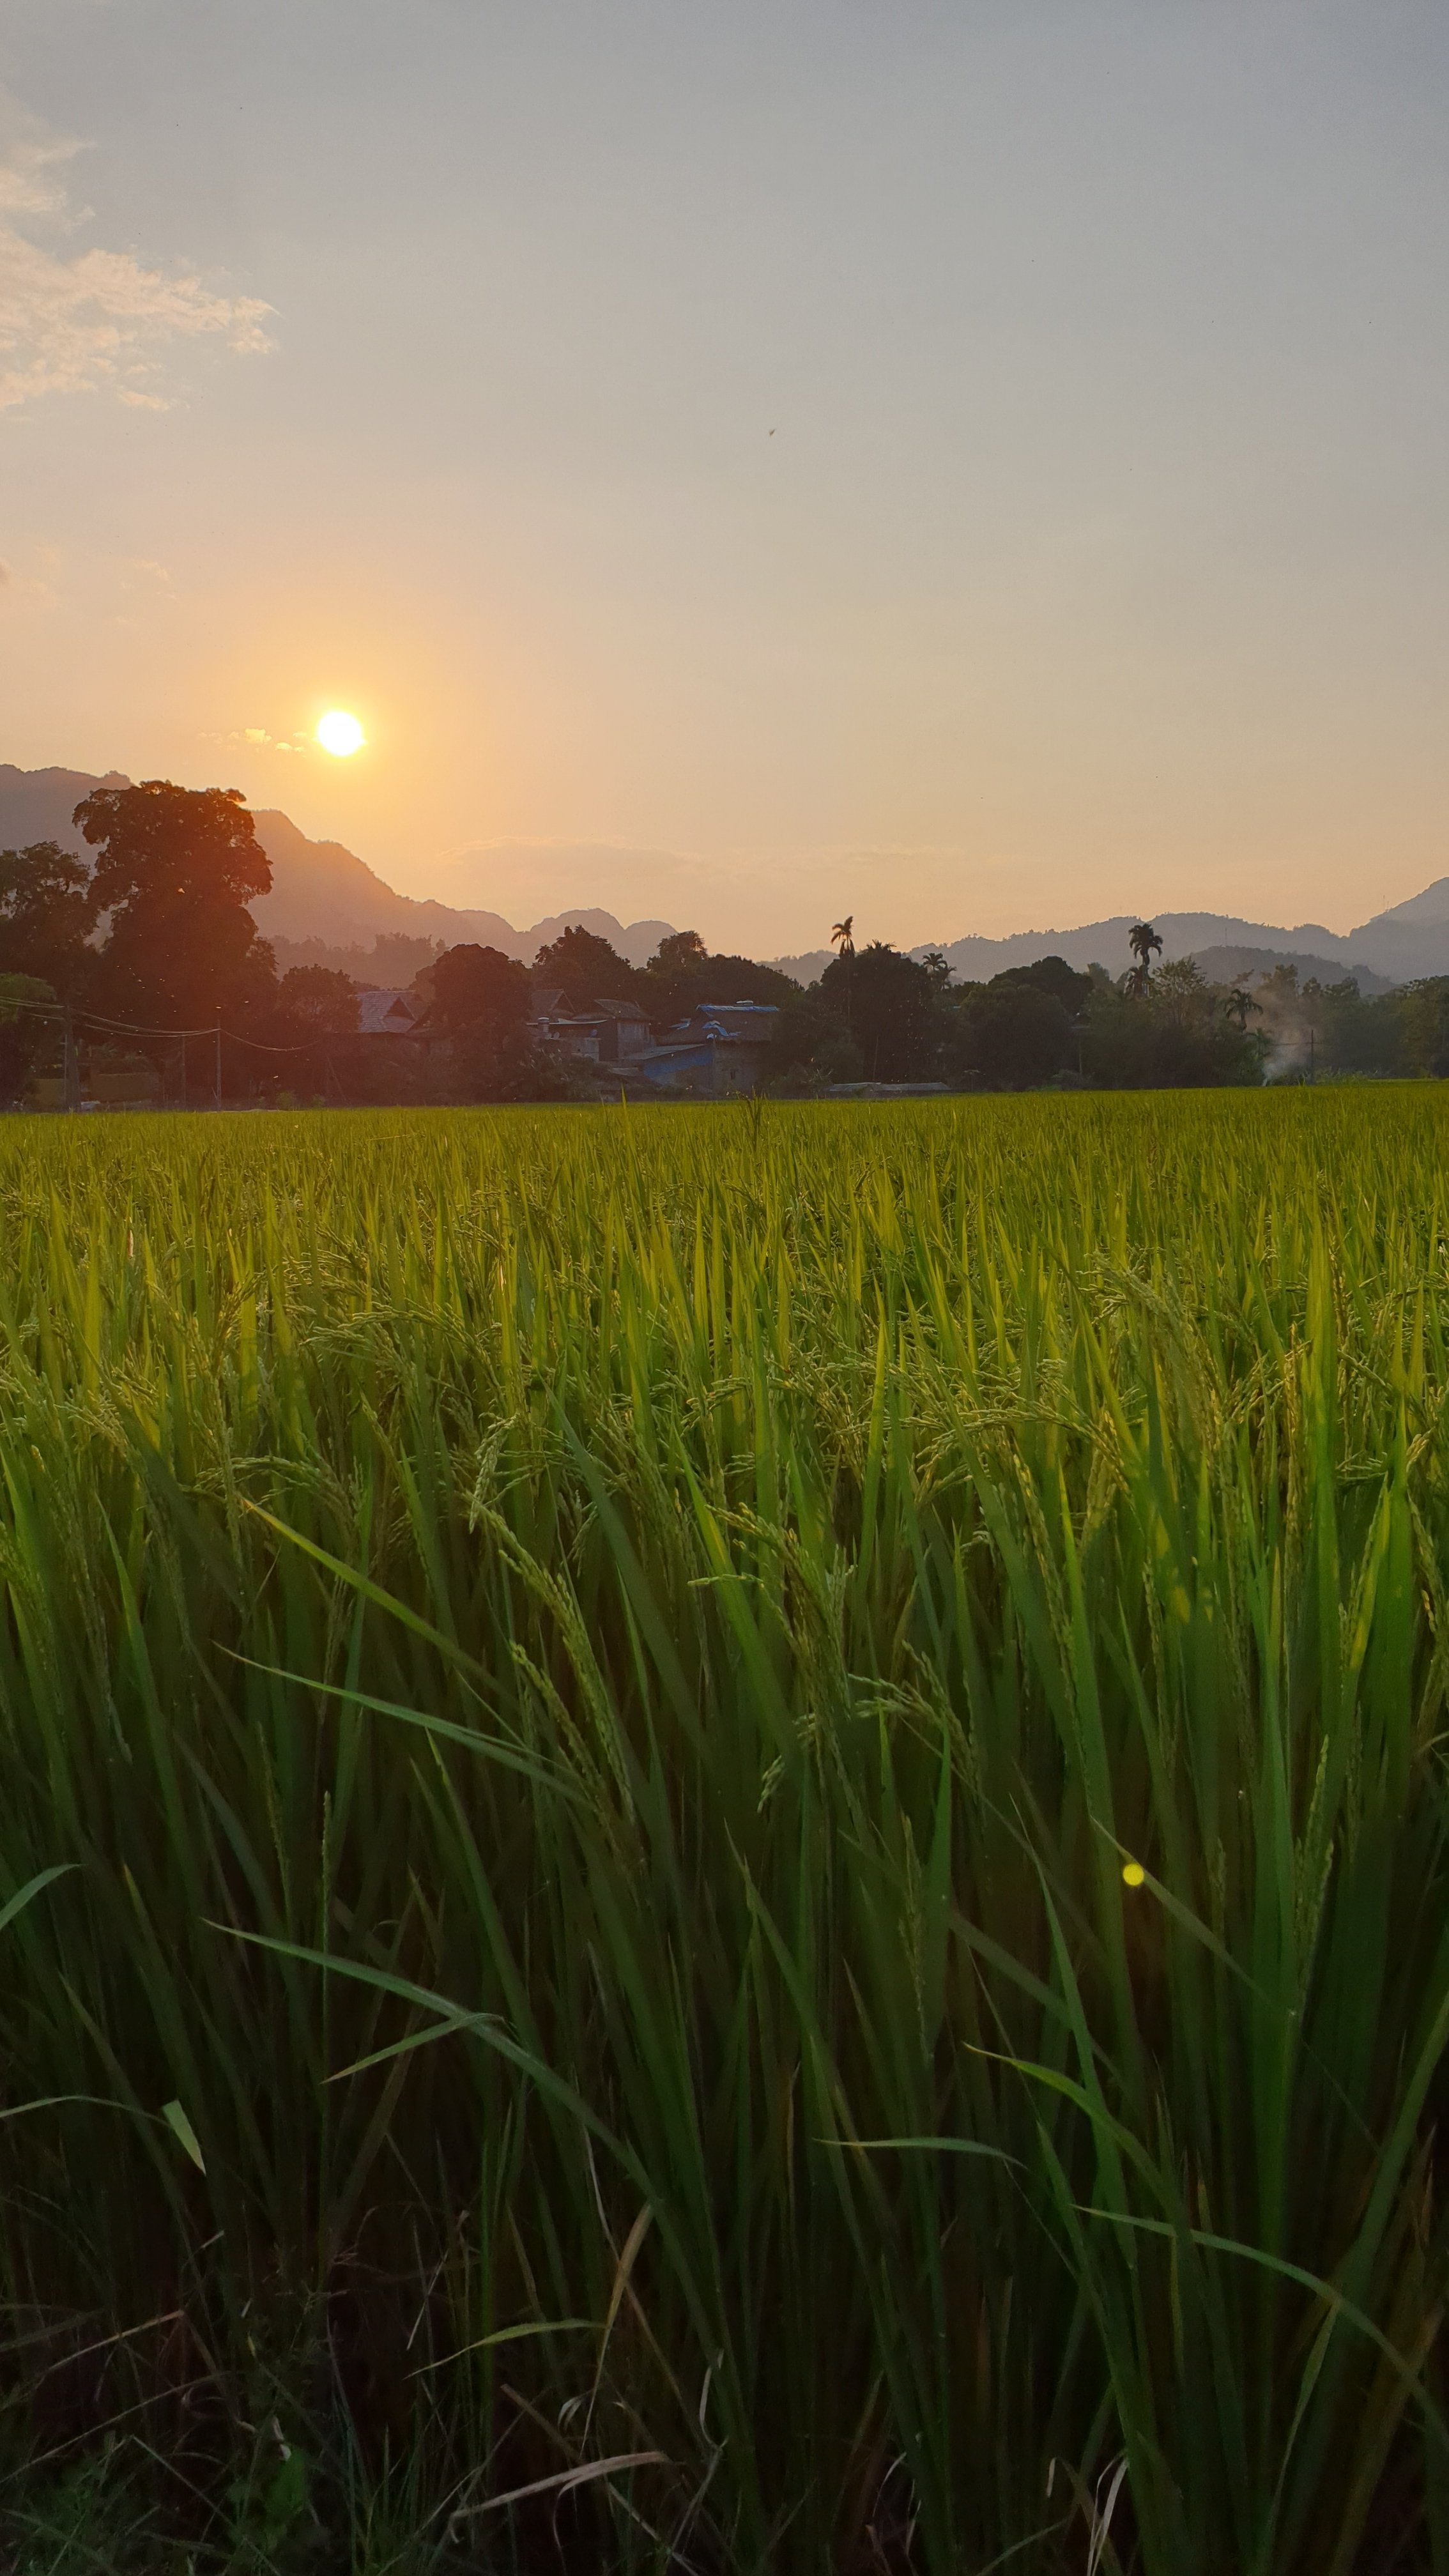 View of sun setting over rice field in Mai Chau